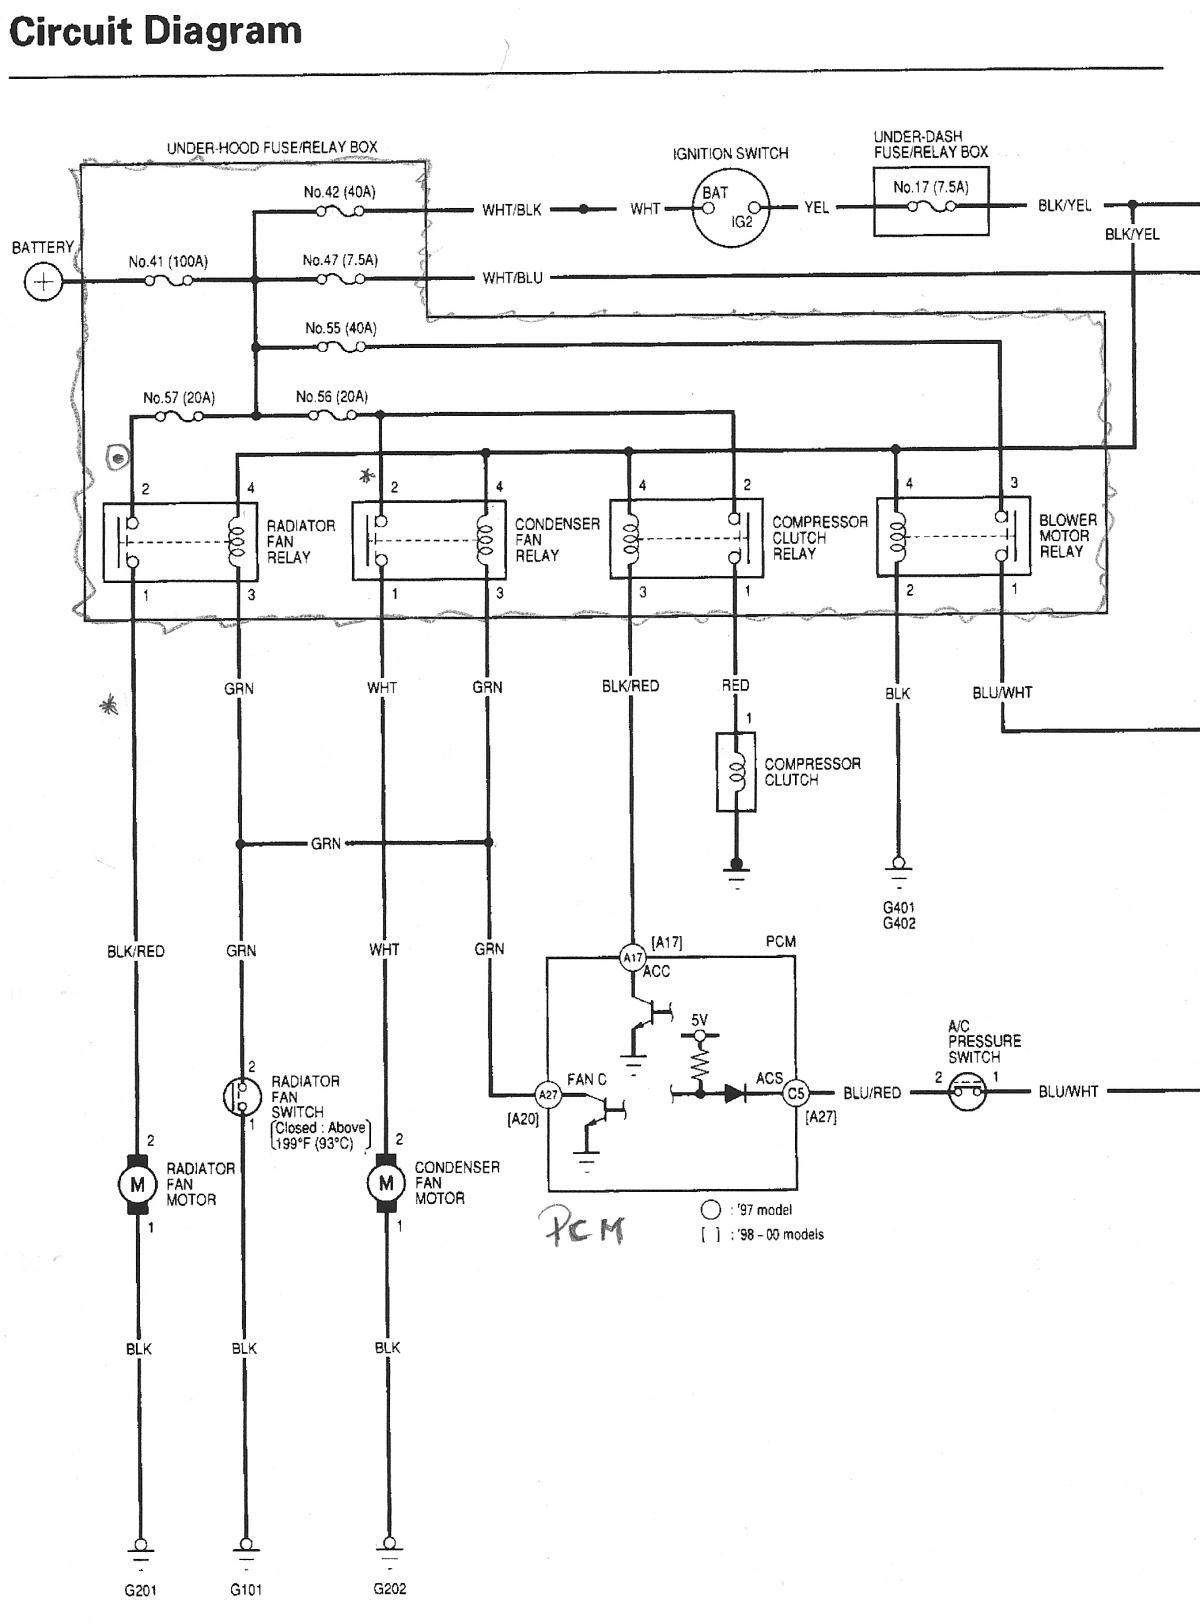 Unique Ac Schematics Diagram Wiringdiagram Diagramming Diagramm Visuals Visualisation Graphical Honda Accord Honda Crv Diagram